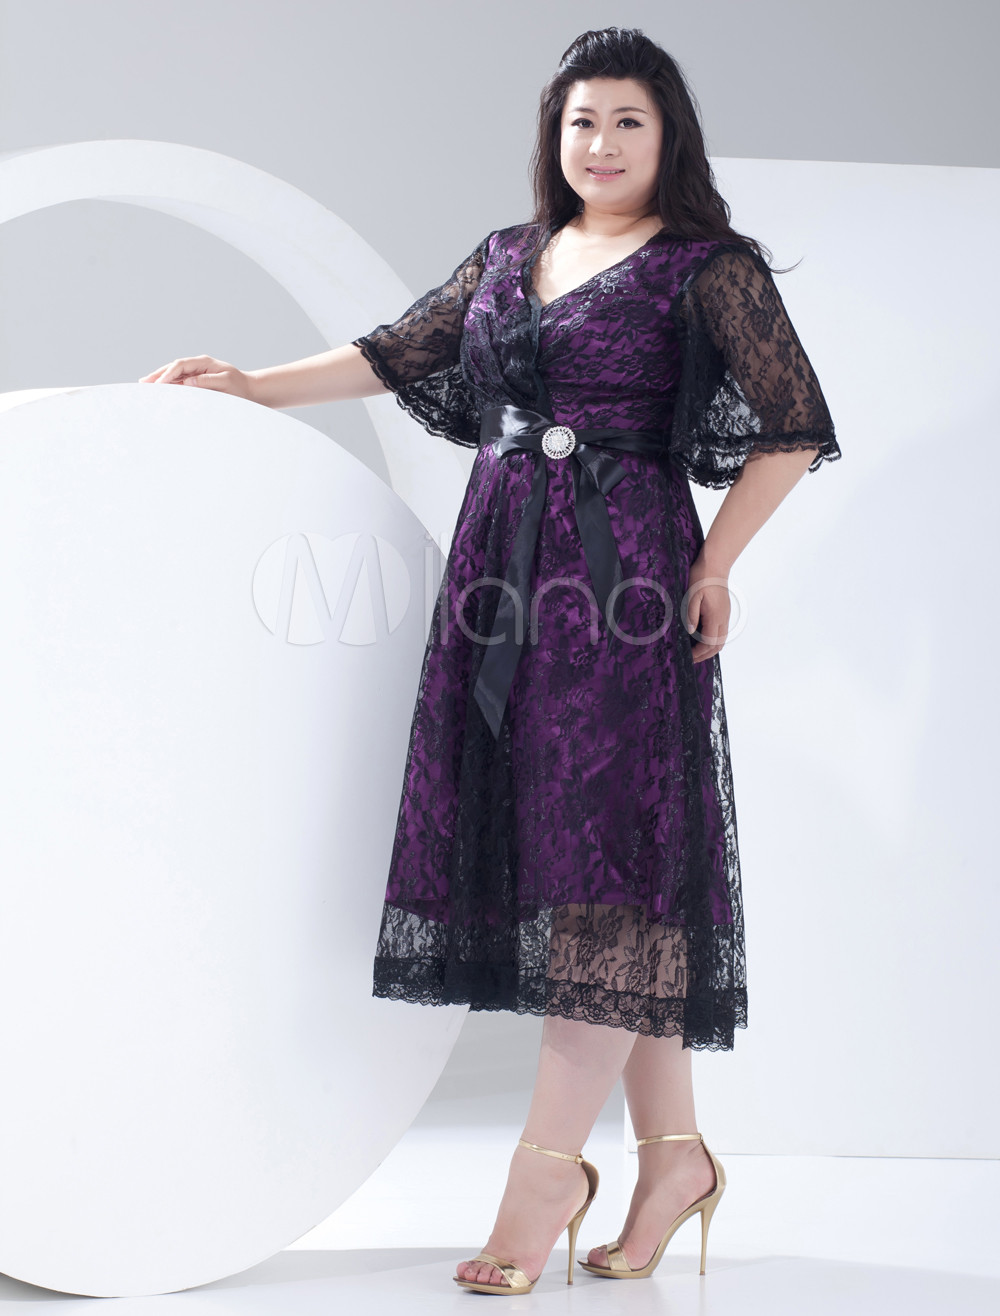 Plus Size Vintage Style Cocktail Dresses - Evening Wear